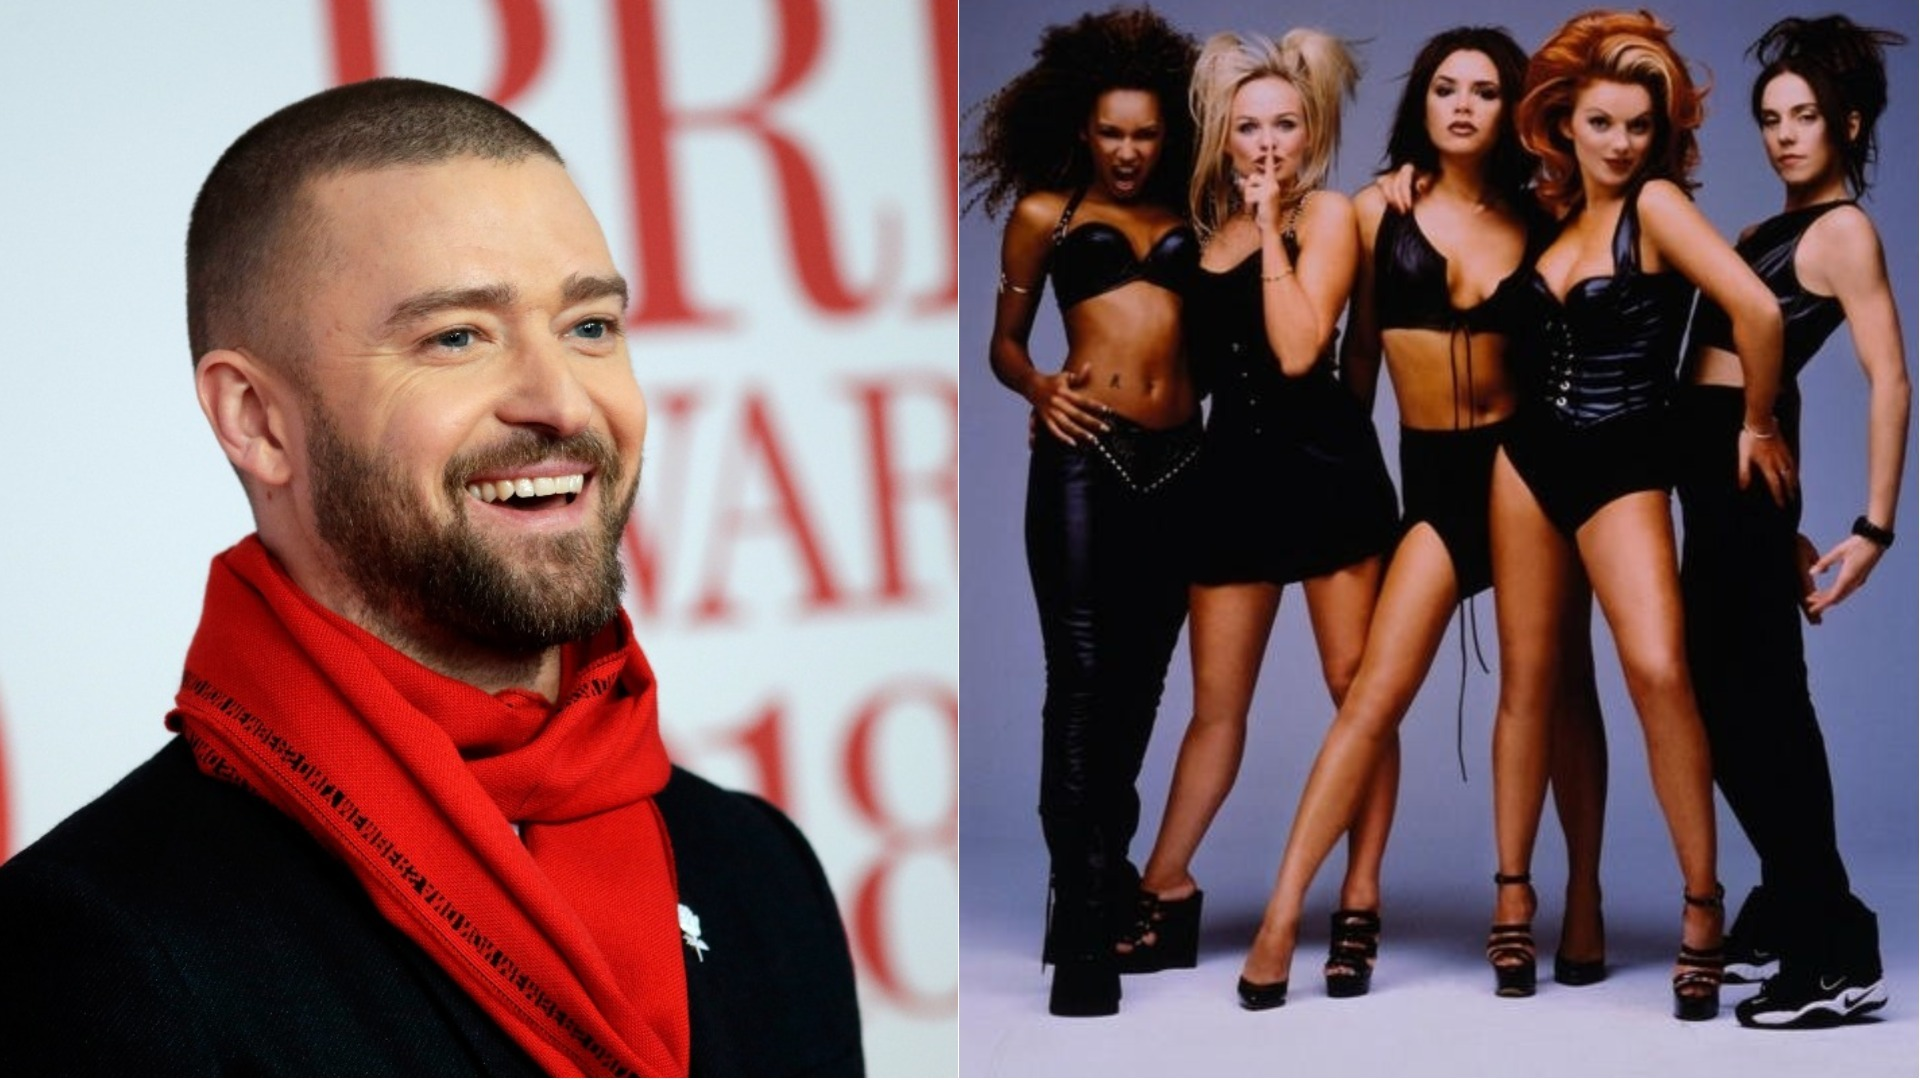 Justin Timberlake and the Spice Girls.